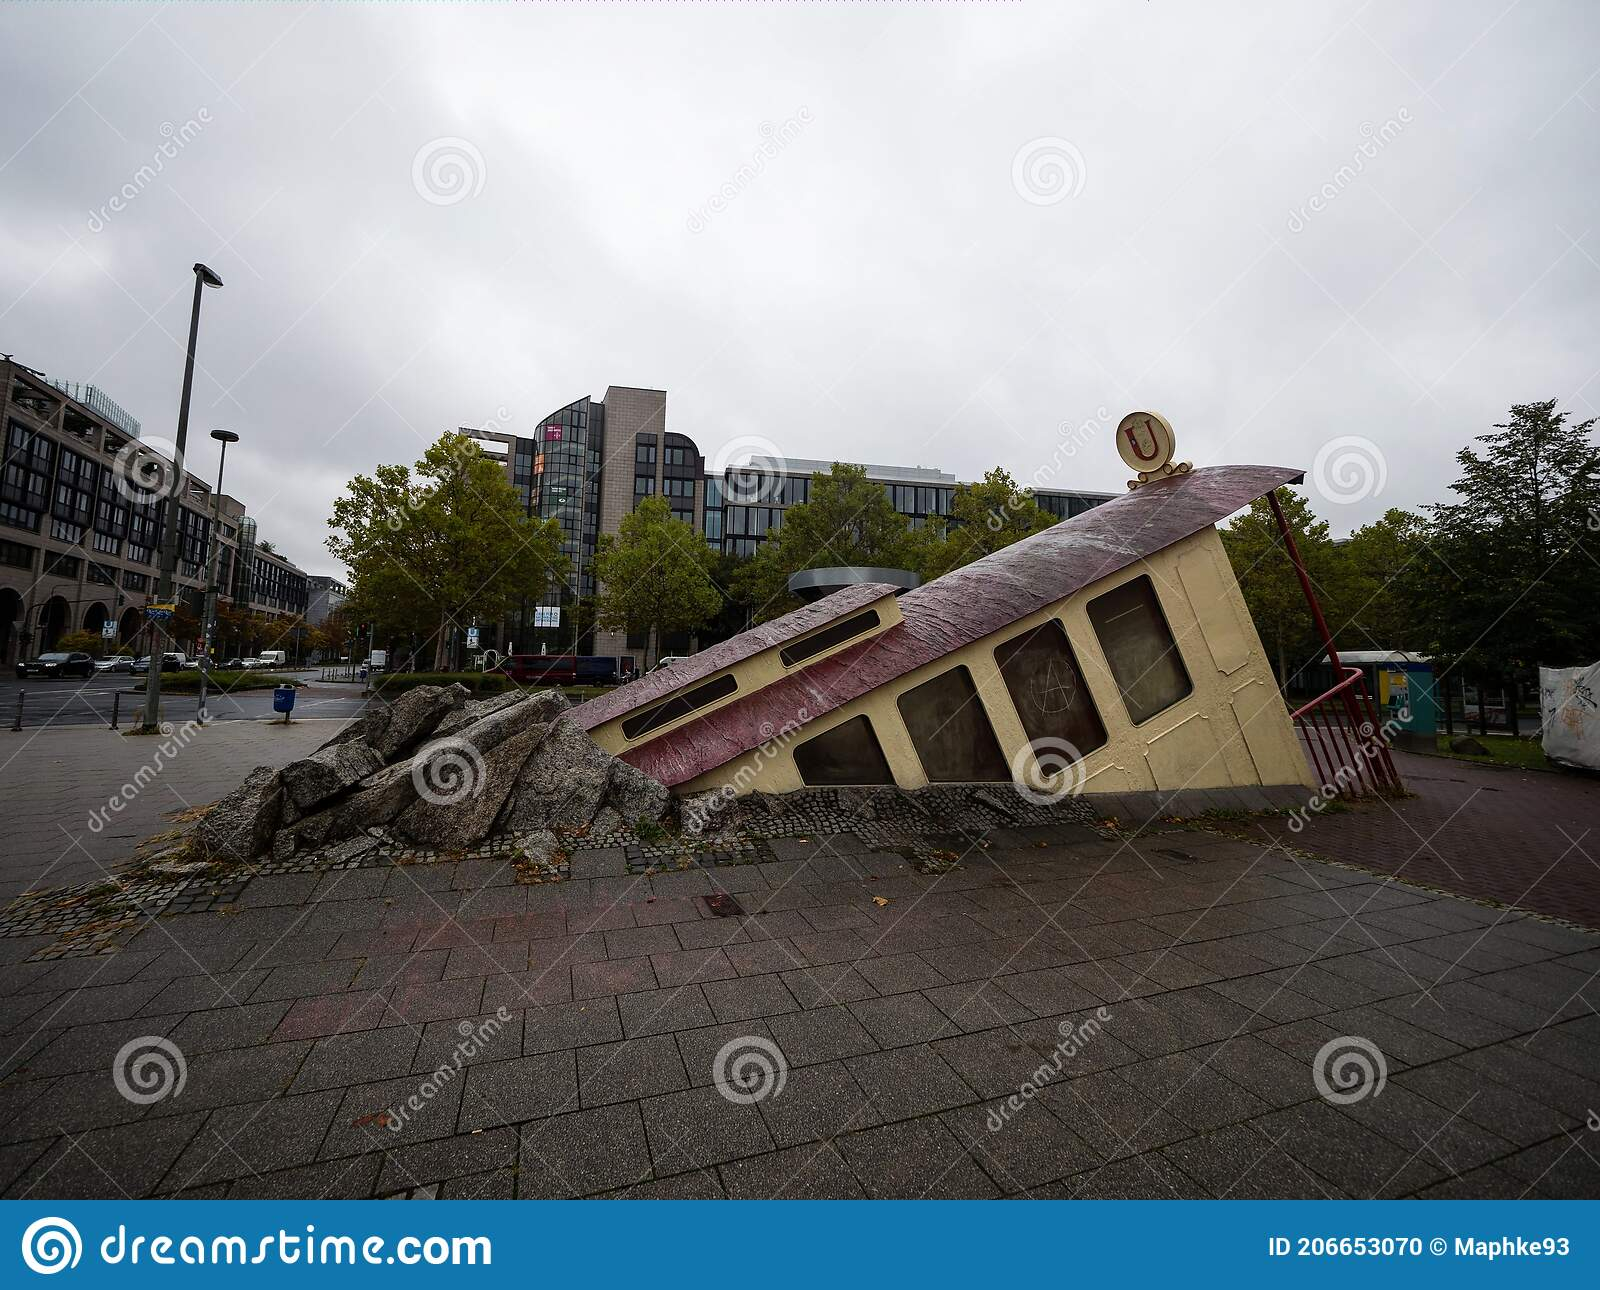 Metro Gartenhaus Bockenheimer Frankfurt Photos - Free & Royalty-free Stock Photos From Dreamstime